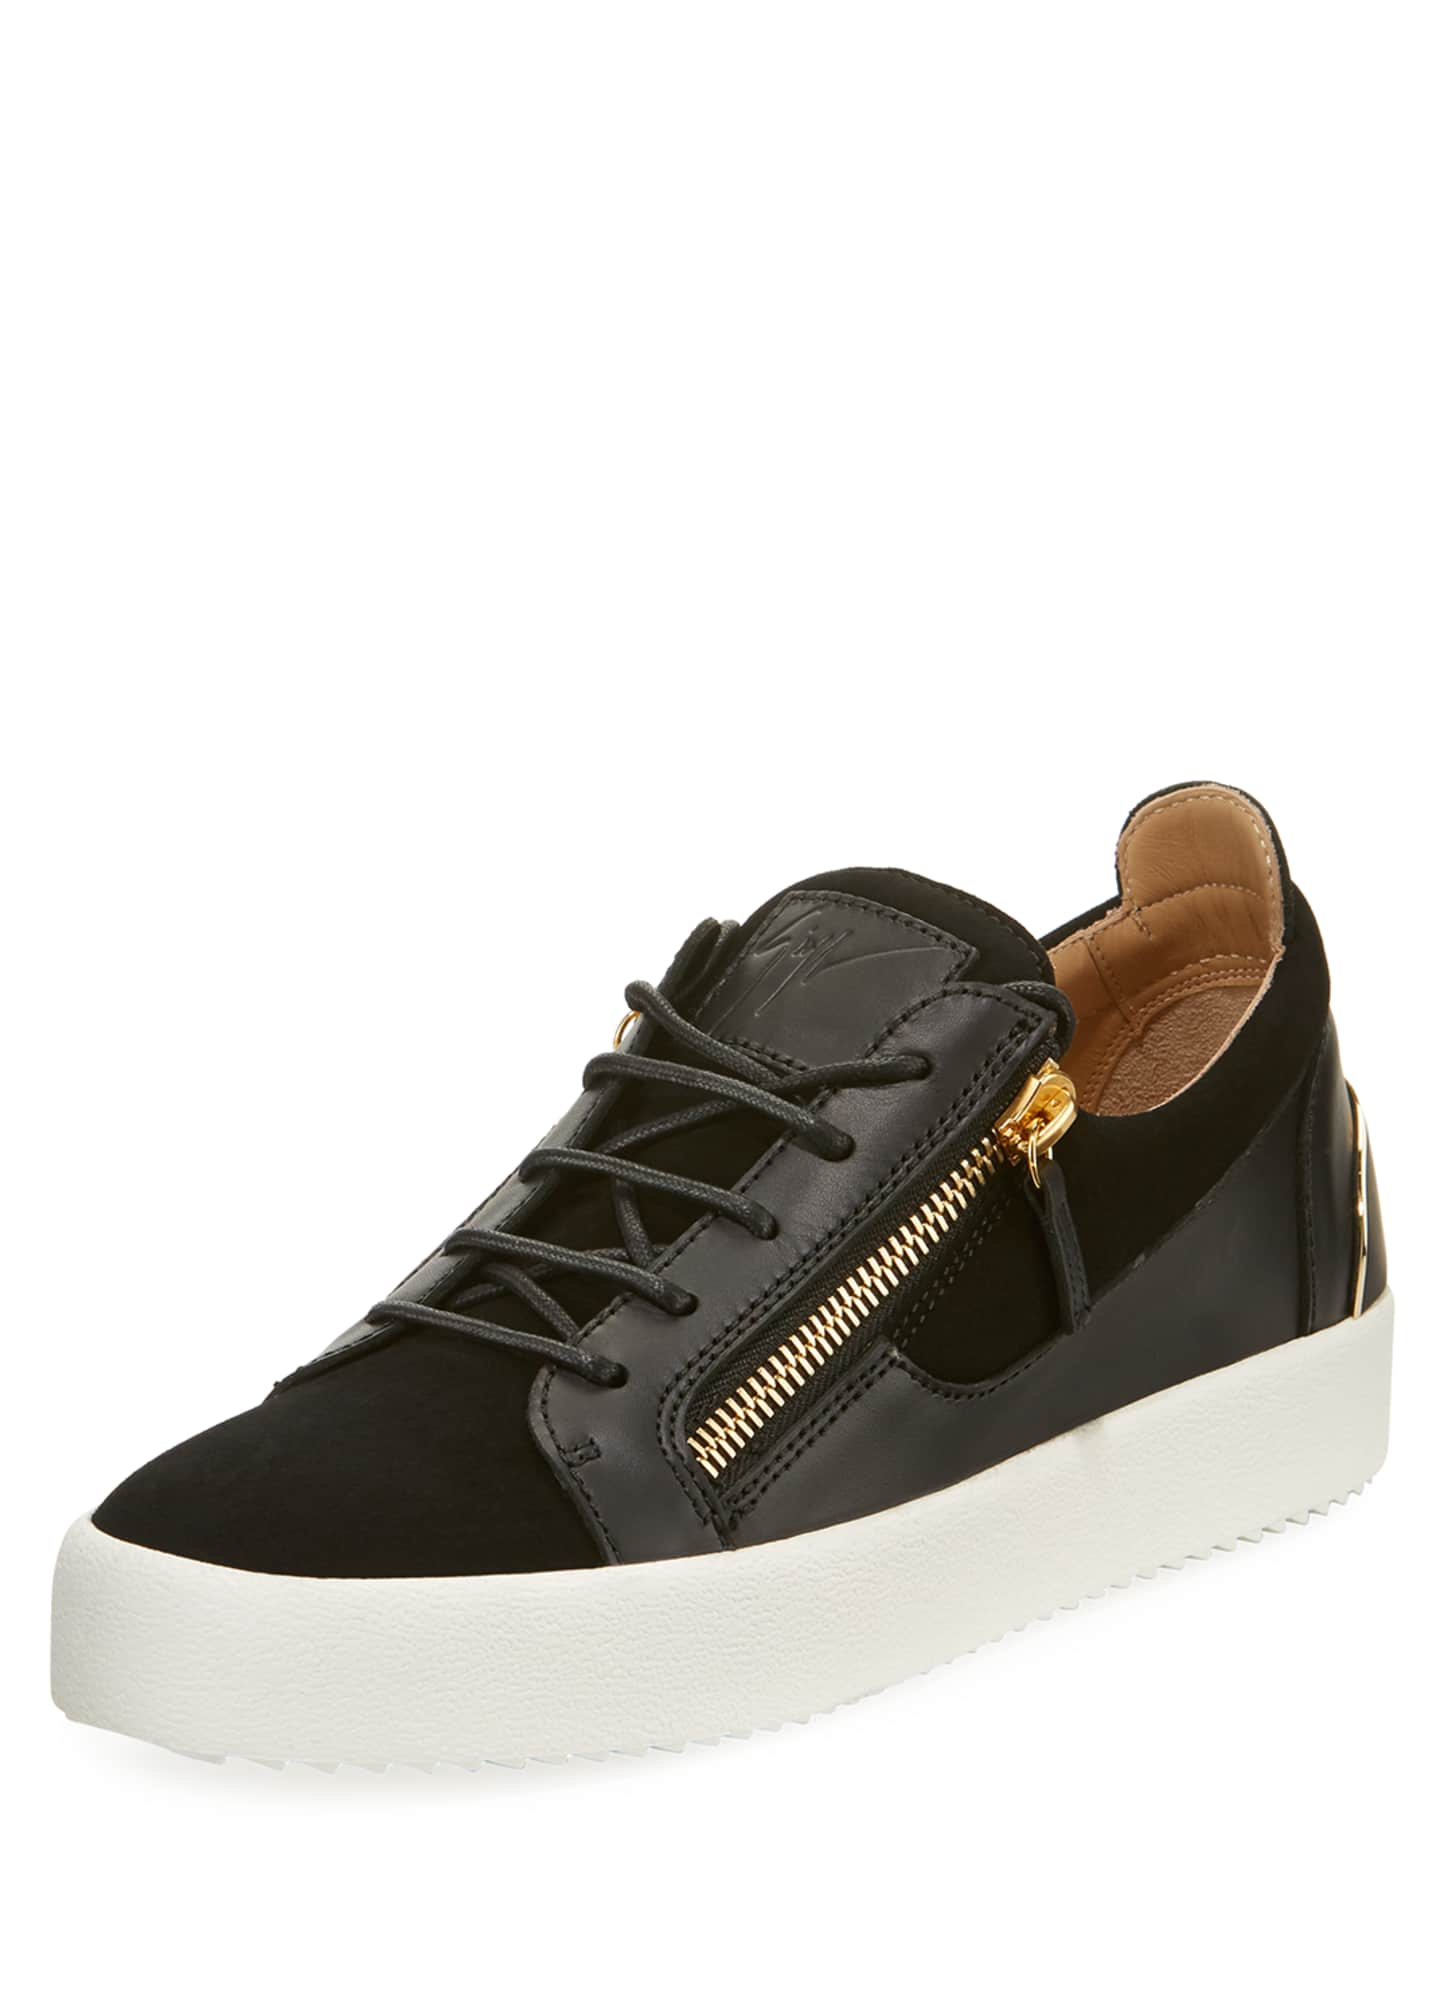 Giuseppe Zanotti Men's Suede & Leather Low-Top Sneakers